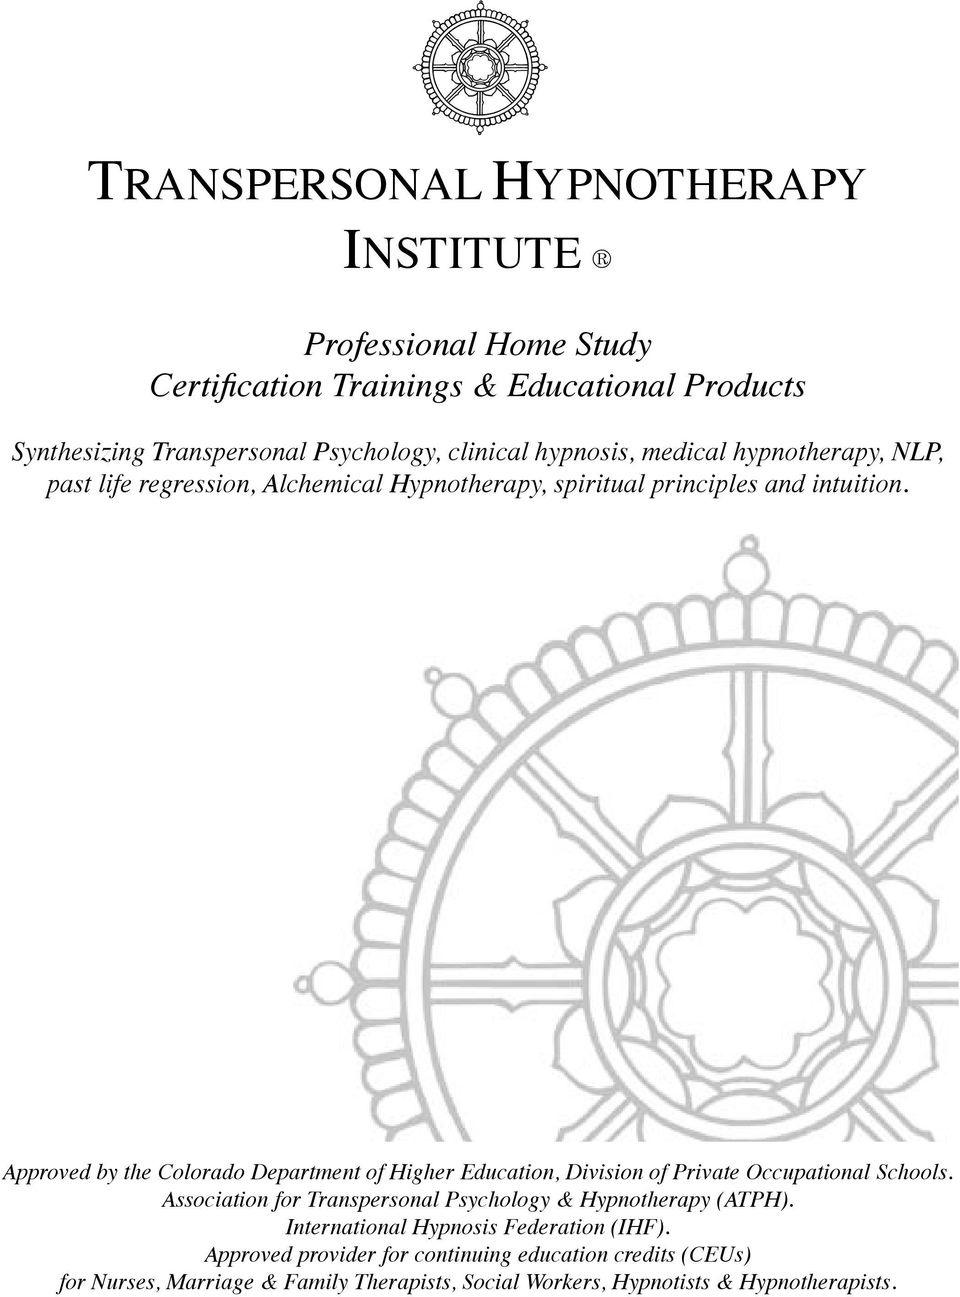 TRANSPERSONAL HYPNOTHERAPY INSTITUTE - PDF